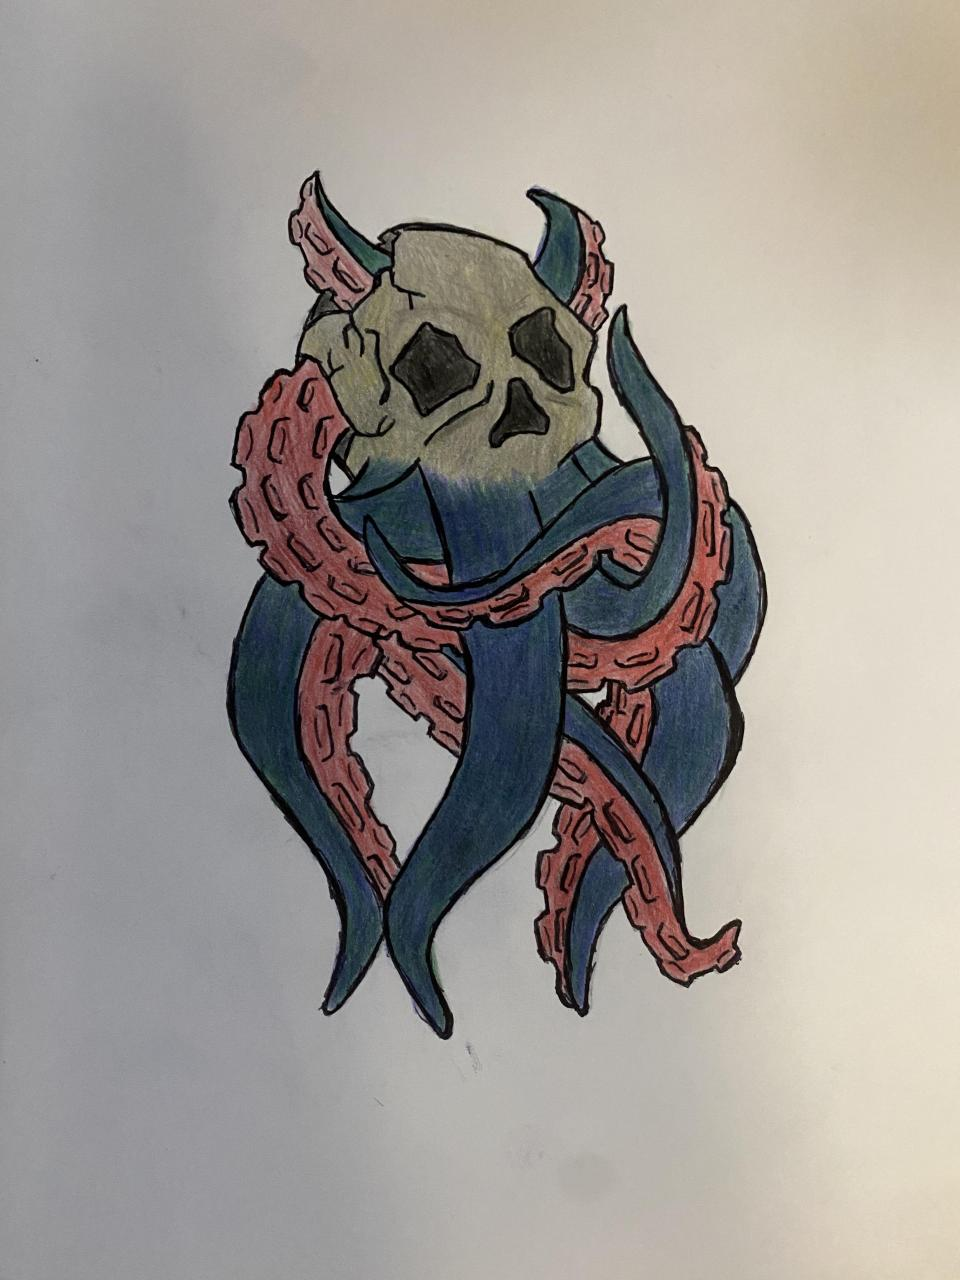 Design for a devil-skull octopus I drew, sorry about the out line my hands have tremors. Shaky lines aside, is this a cool design, if cleaned up by the steady hands of an artist? Color or black and gray?